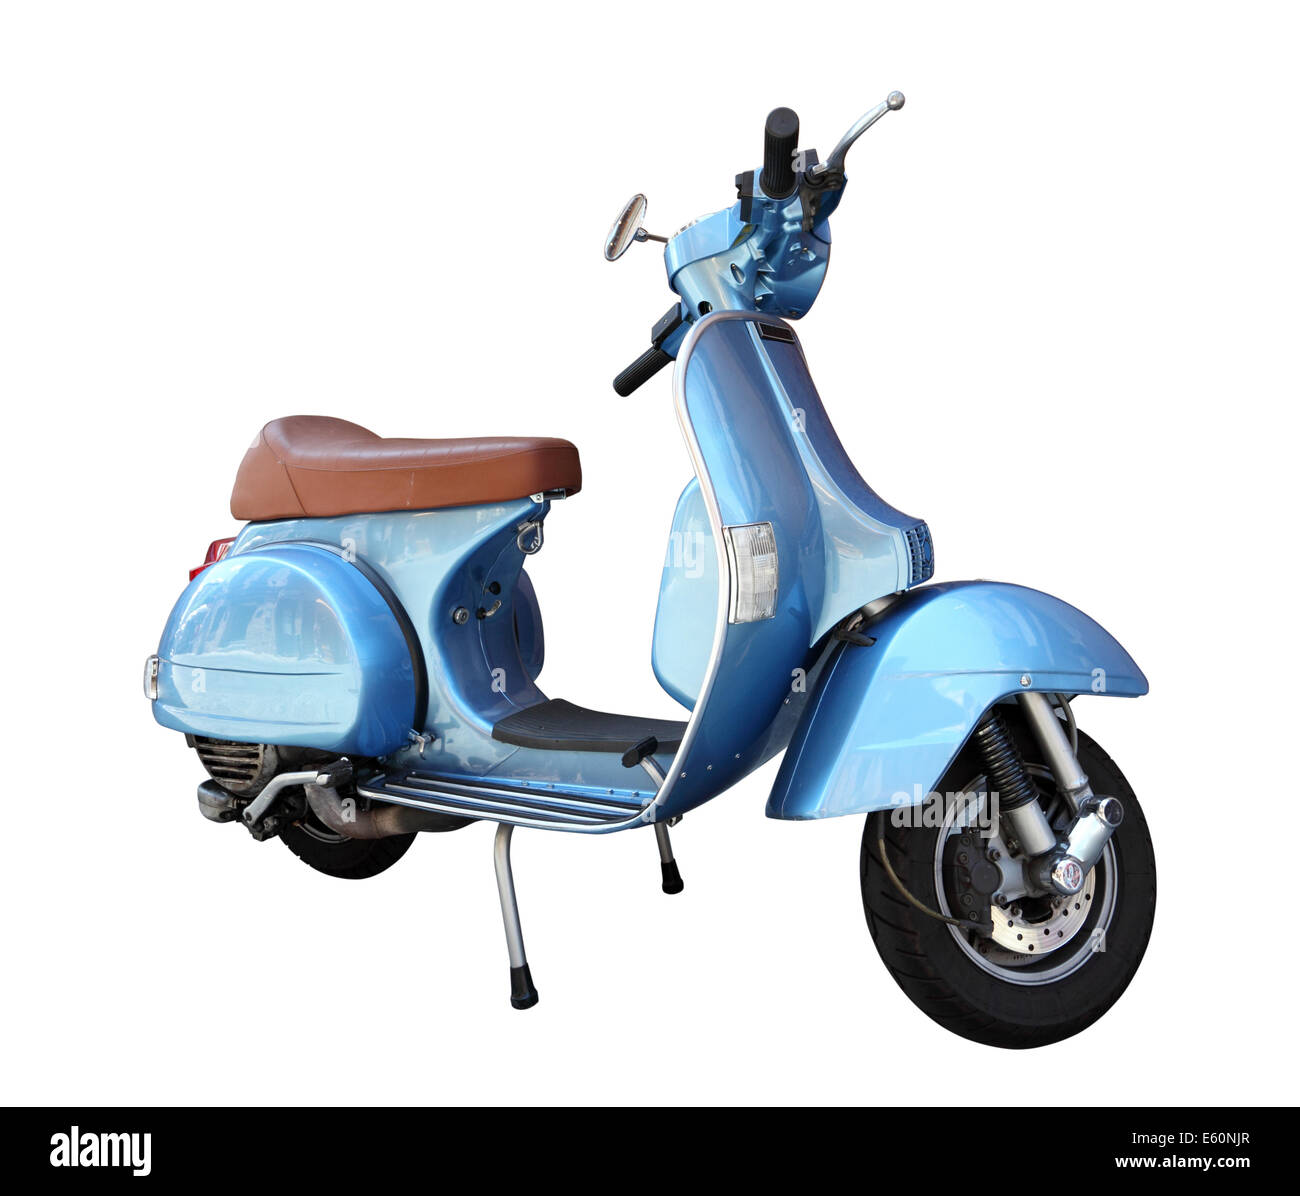 Classic scooter isolated on a white background - Stock Image